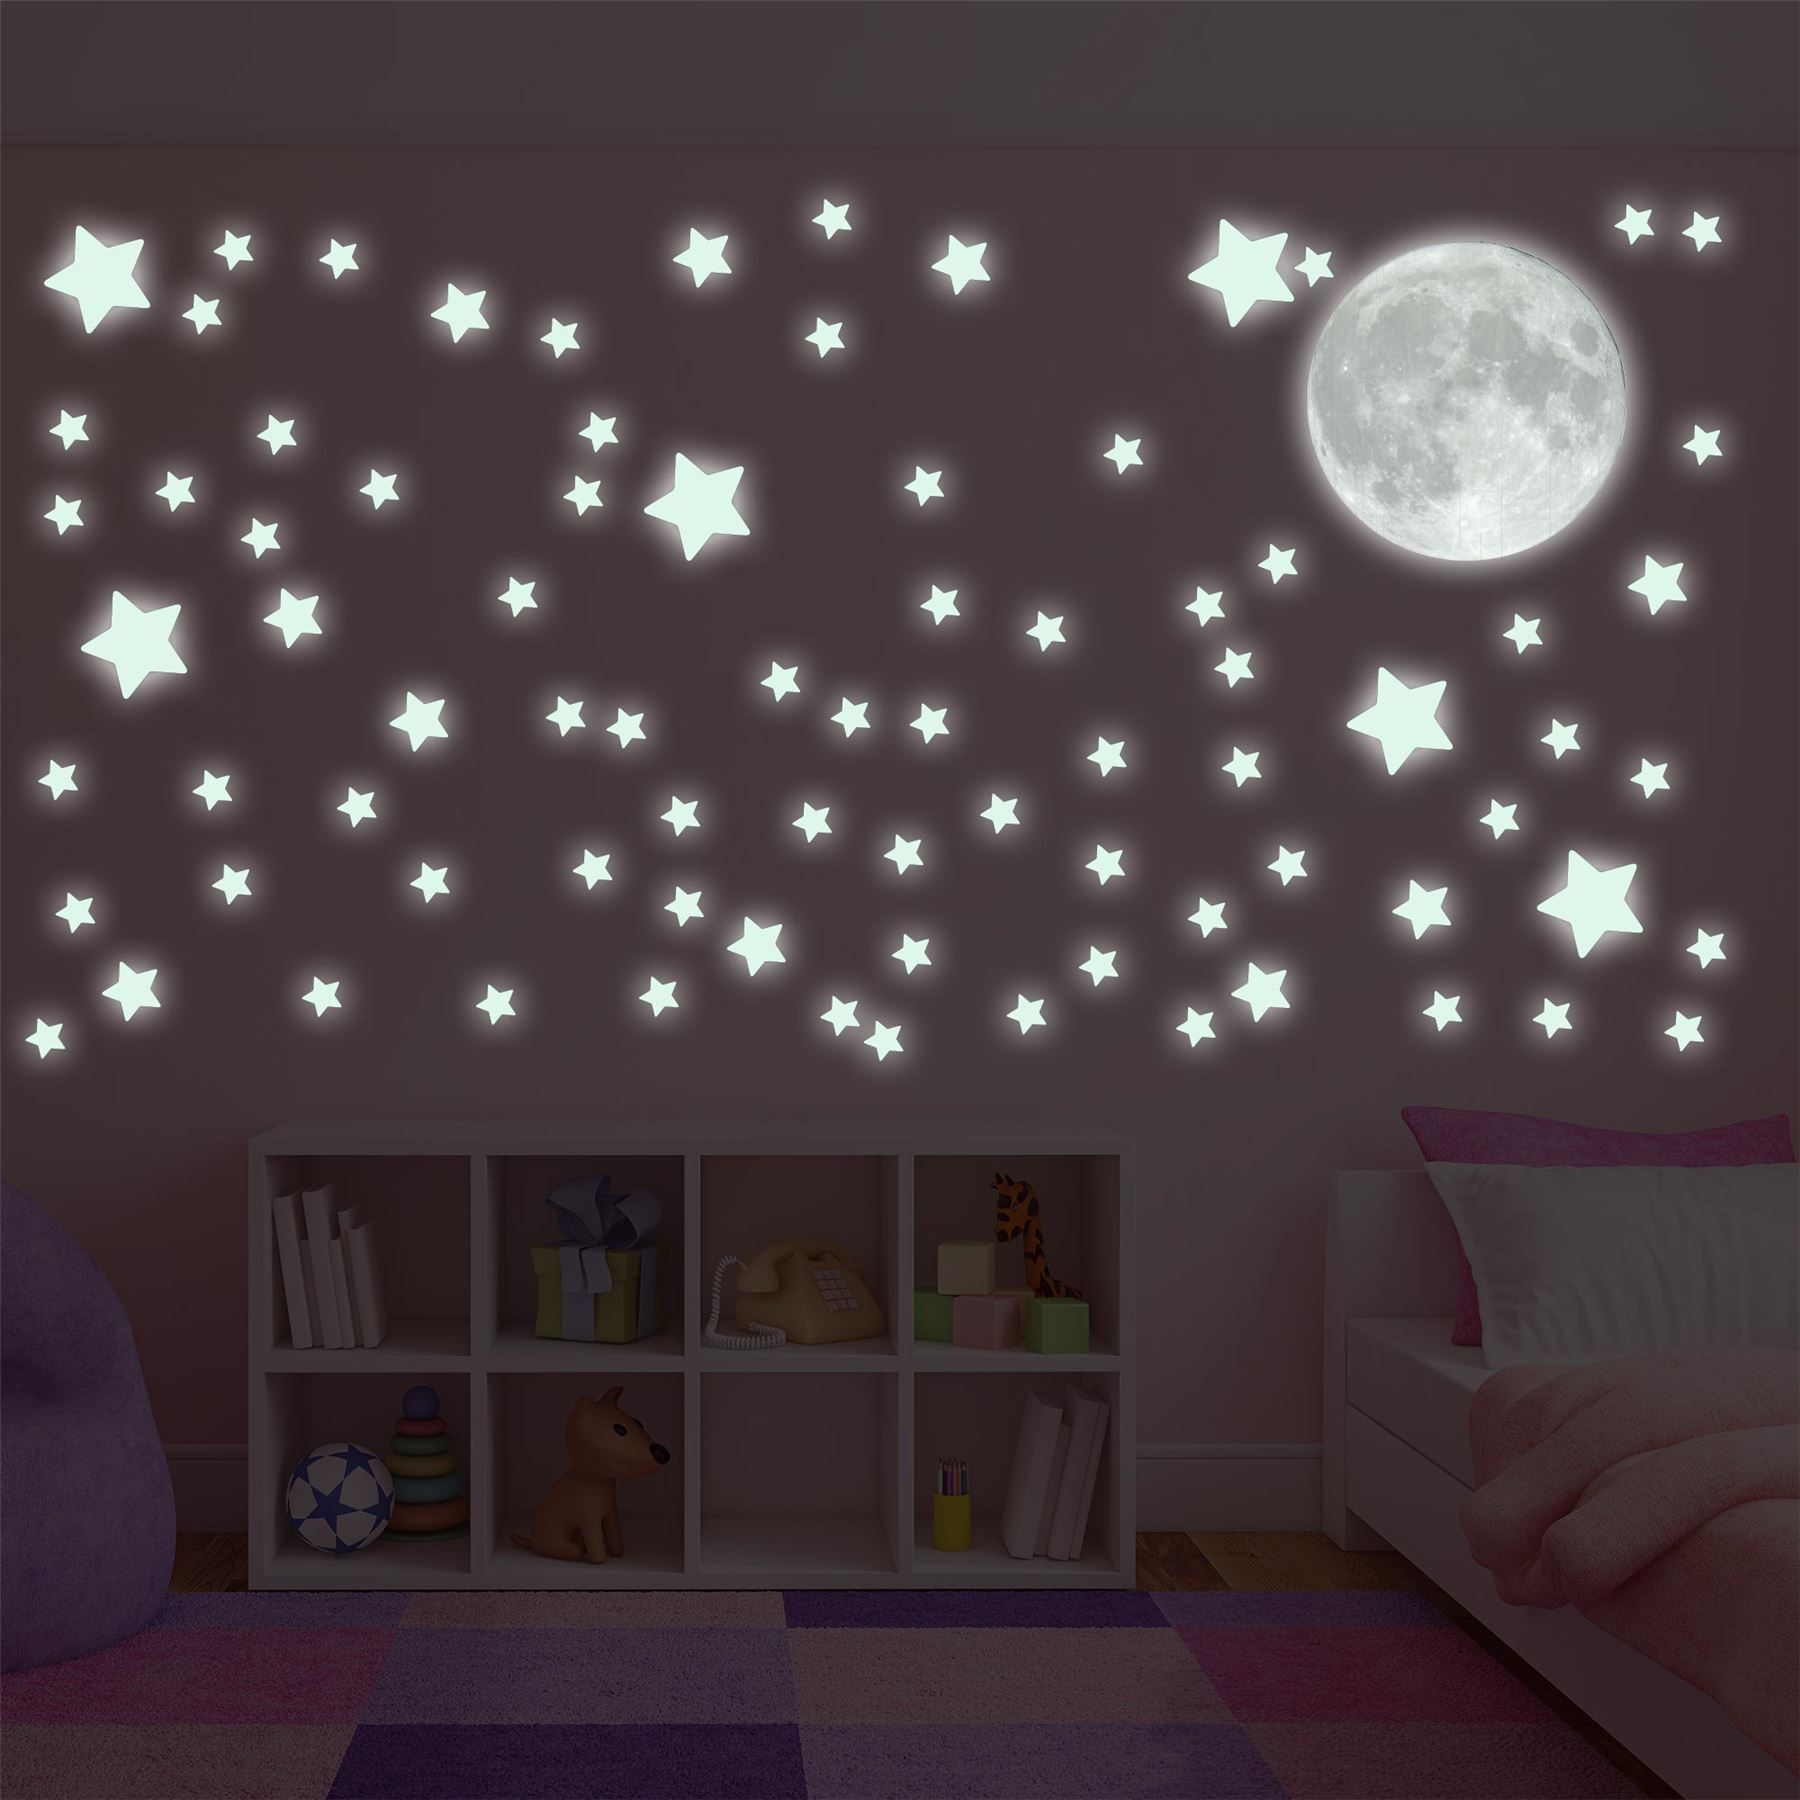 28 moon and stars wall stickers moon and stars wall decal moon and stars wall stickers glow in the dark moon and stars wall sticker decal ebay